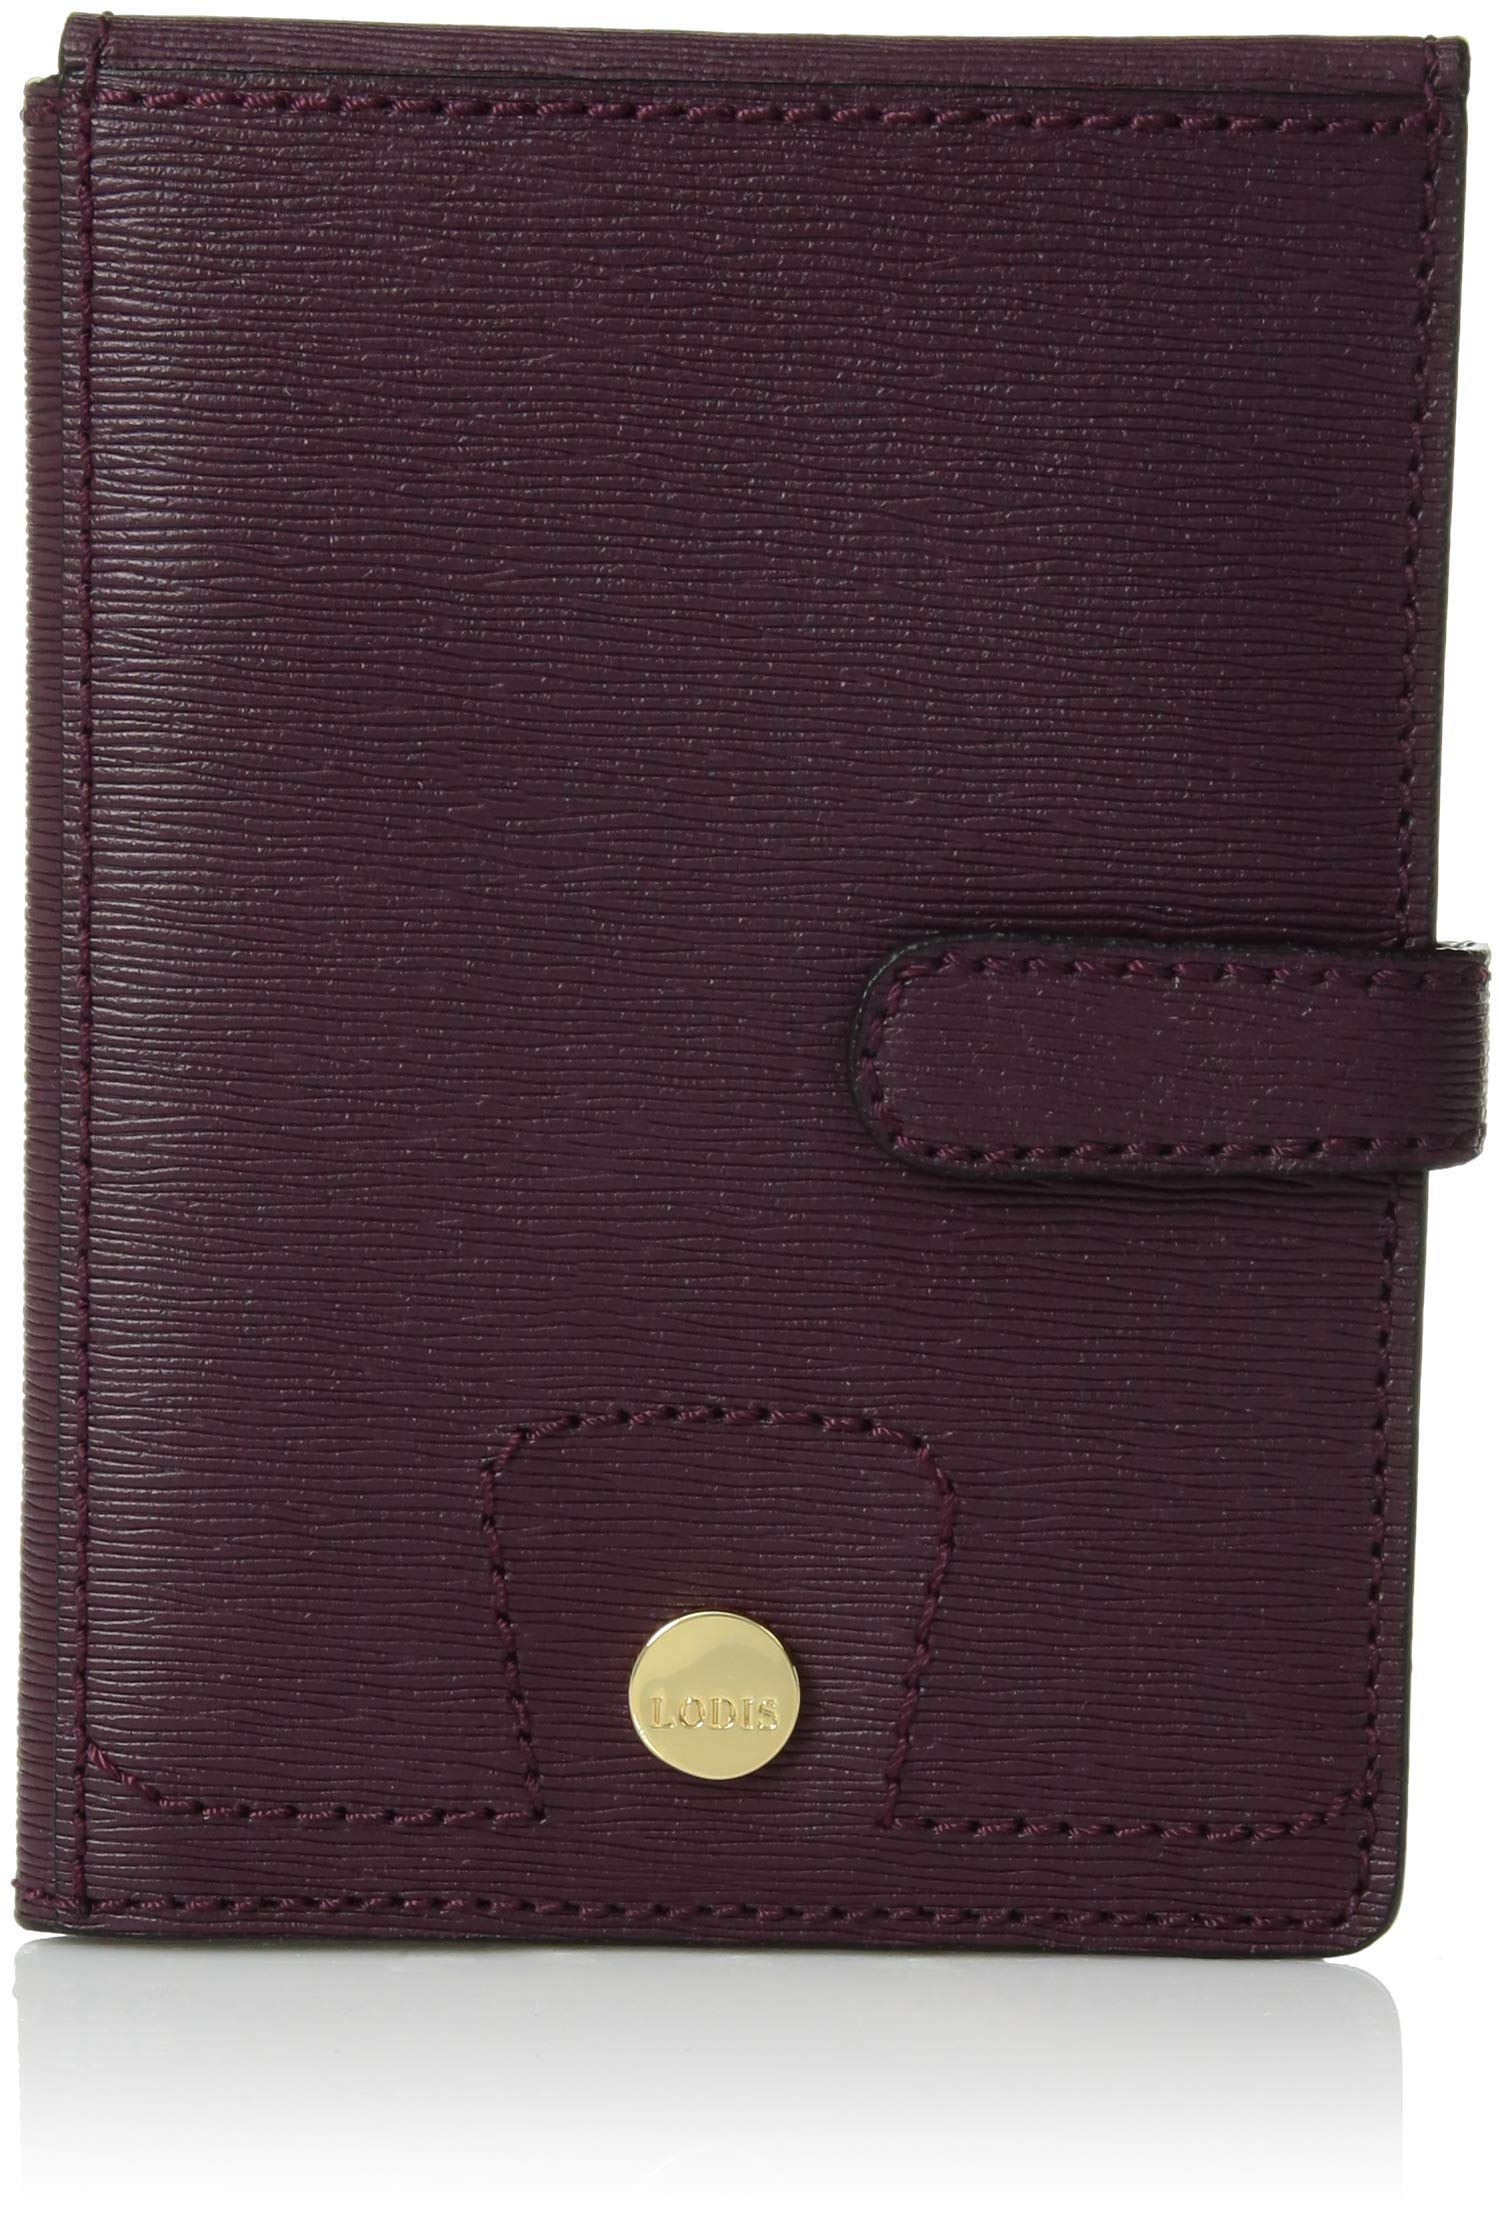 Lodis Accessories Women's Belair Passport Wallet with Ticket Flap Plum One Size by Lodis Accessories